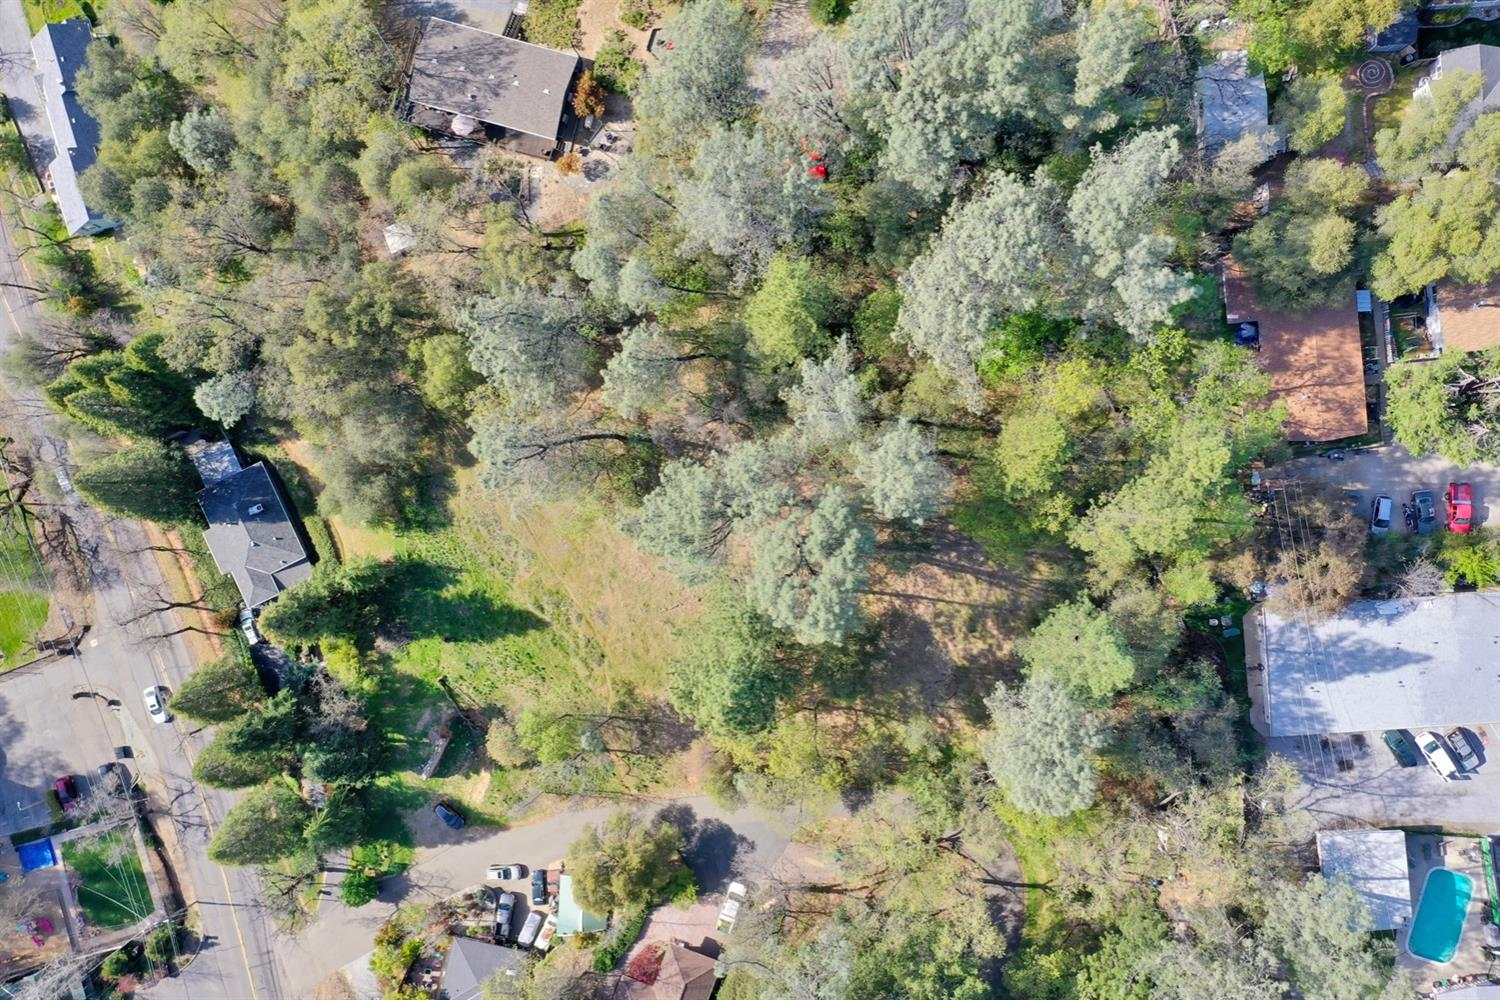 Sweet 1 plus acre lot in Placerville. Would be a great property to build your new home, water, sewer and power are at property. The lot runs all the way up the hill with Vivian Court on the south border. Great location, just walk downtown for shopping or great meals and just a quick drive to Highway 50.